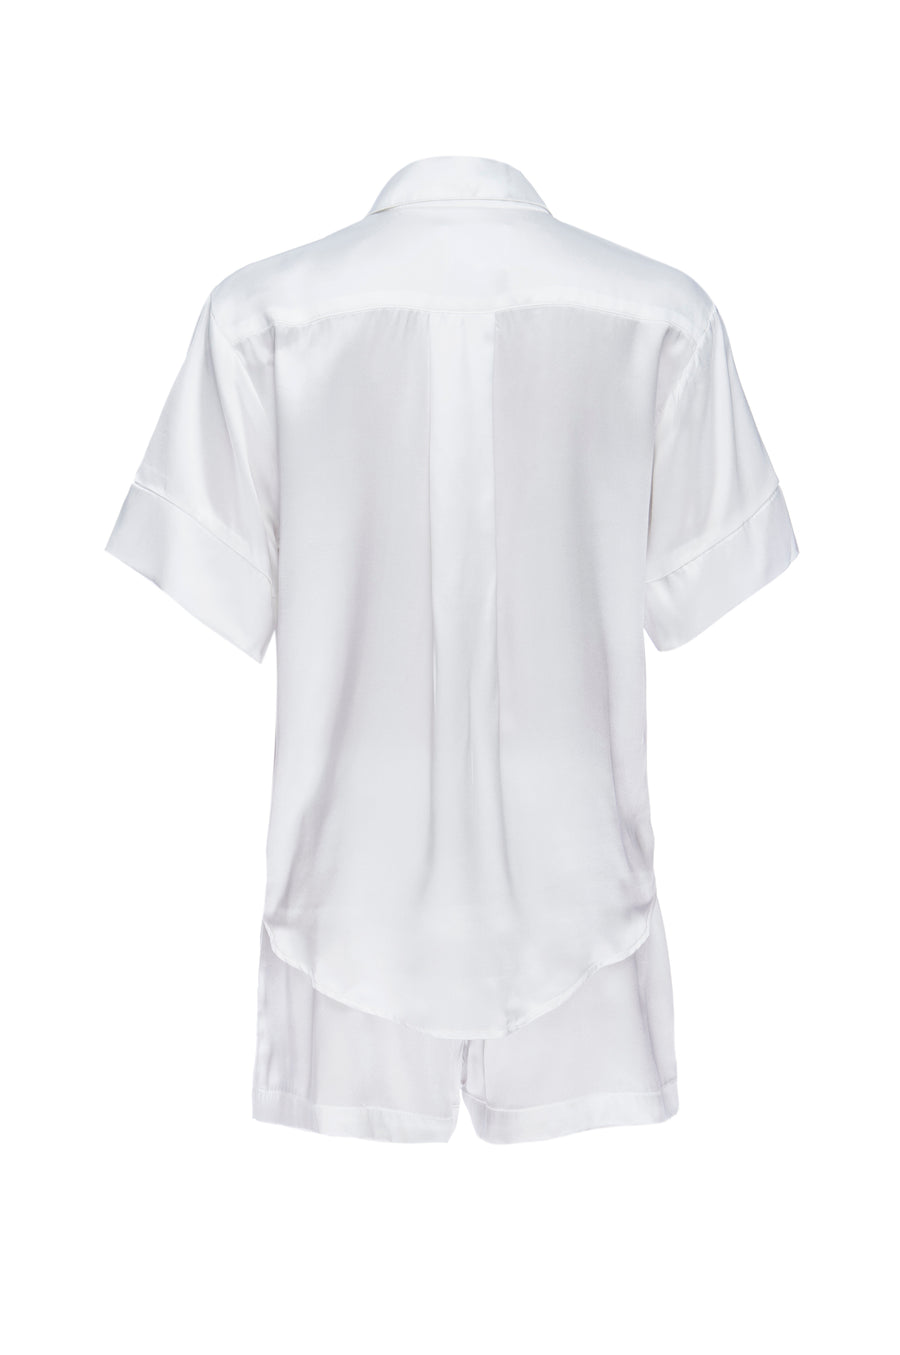 Silk Charmeuse Short Sleeved PJ Top + Short Set: Ivory